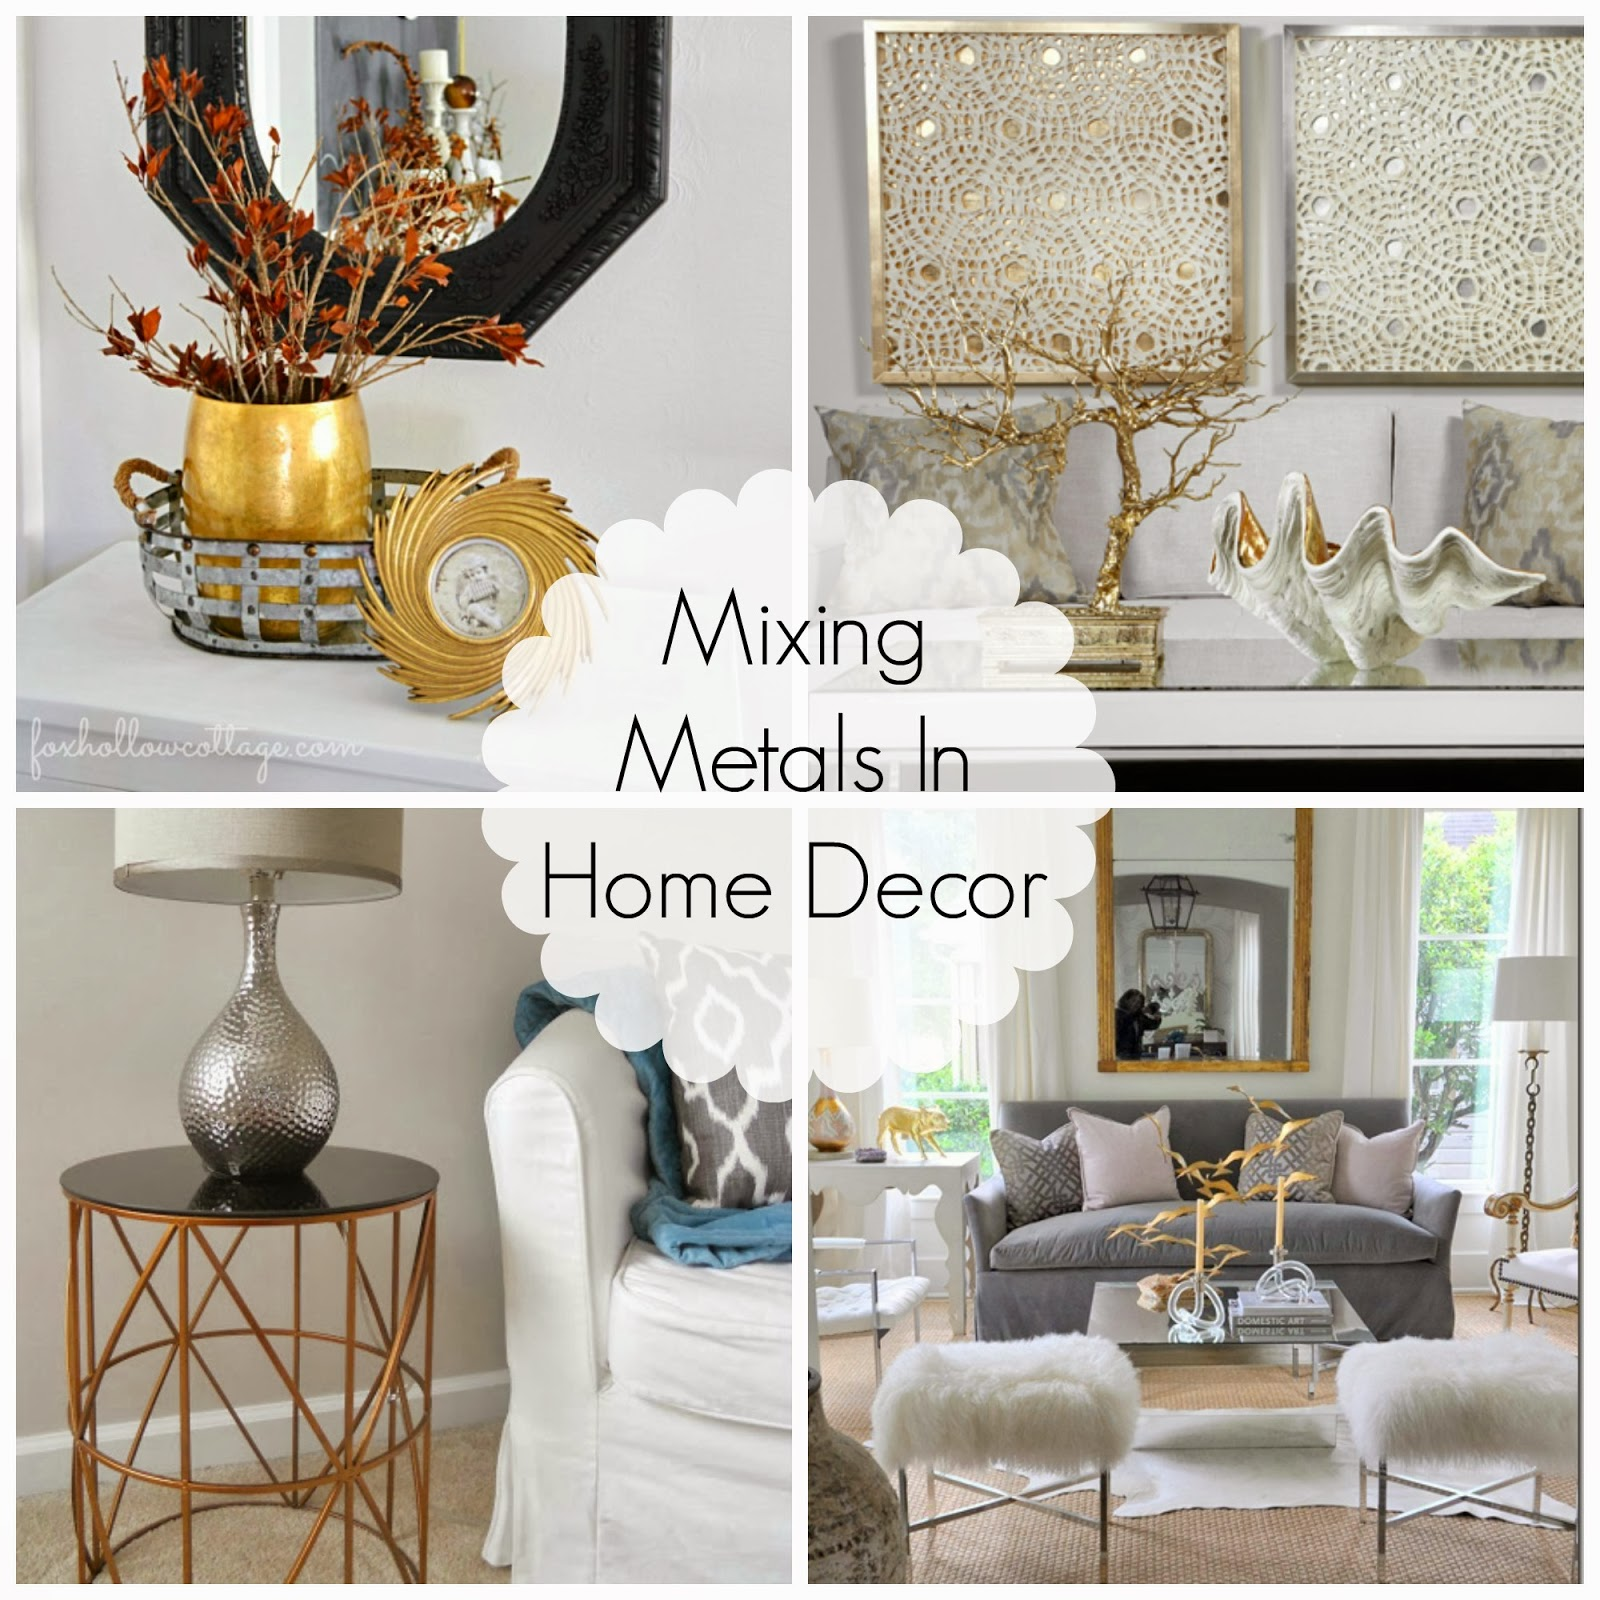 Decorating cents mixing metals in home decor for Home decor and accents